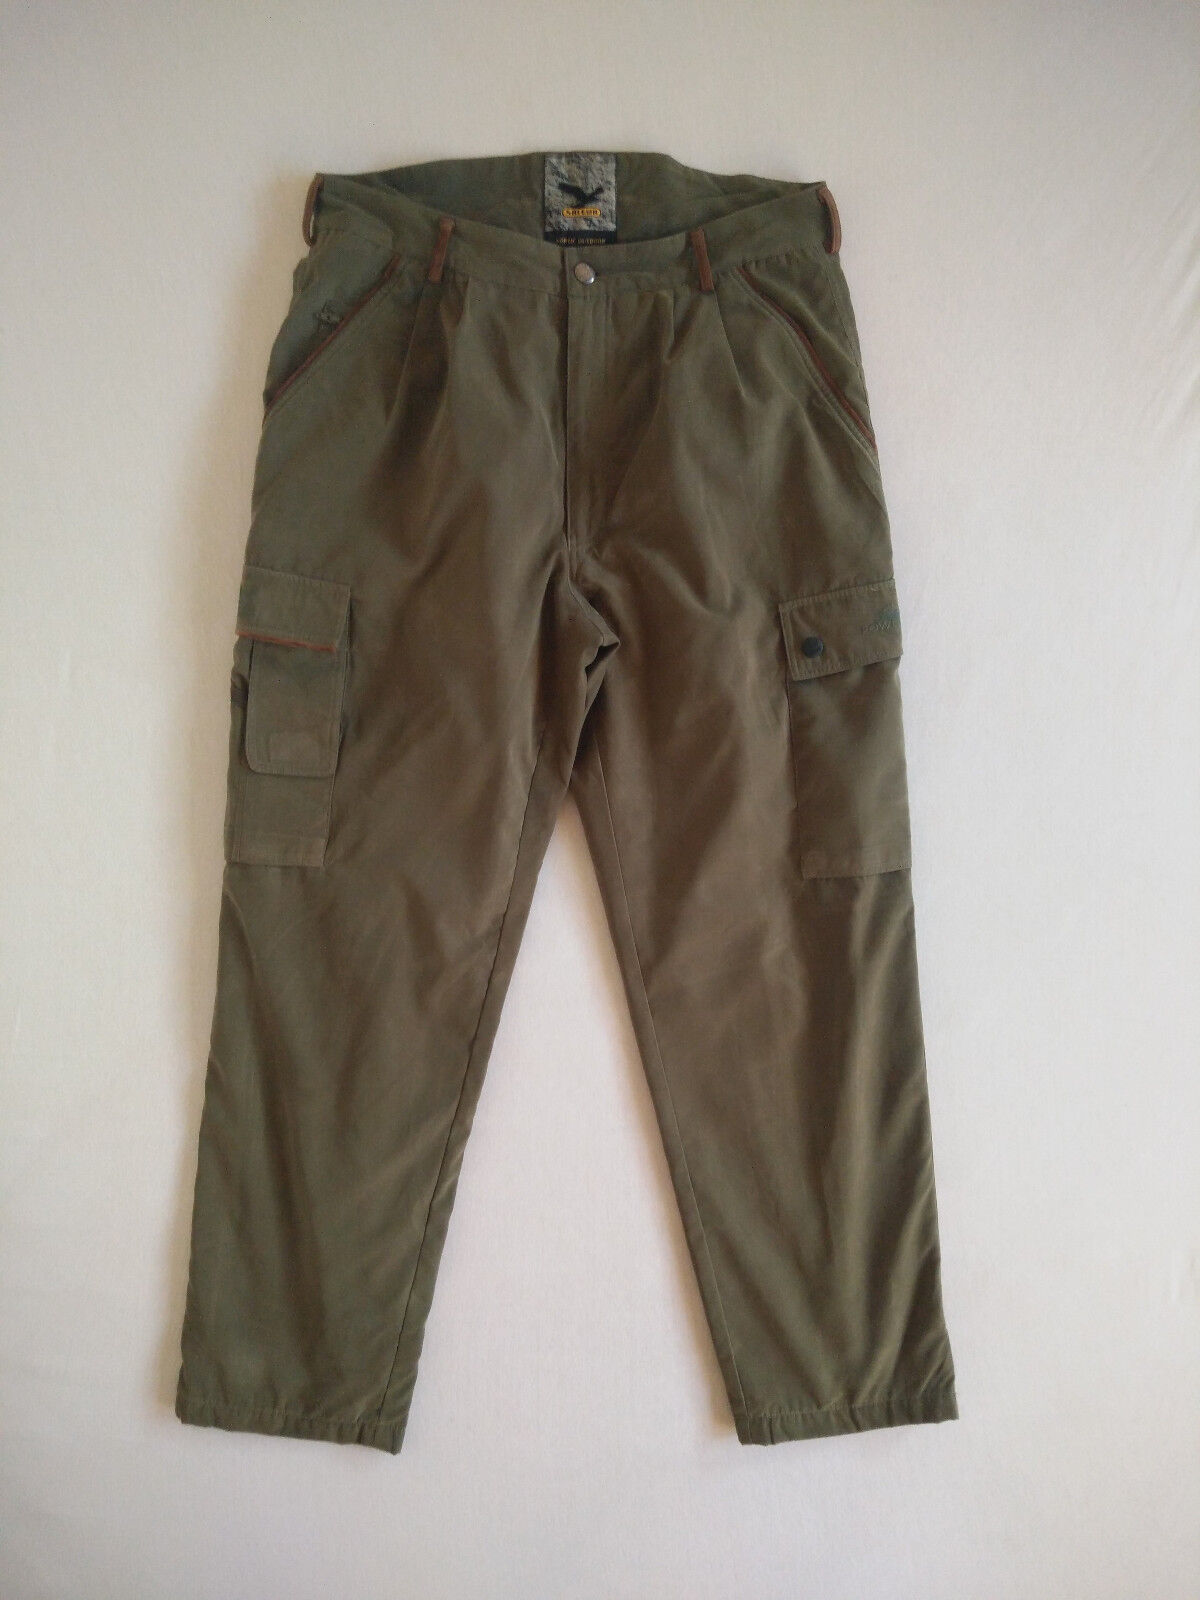 SALEWA Military Outdoor Hunting Hiking  Workwear Pants Trousers 52 EU, 36 US, XL  for wholesale